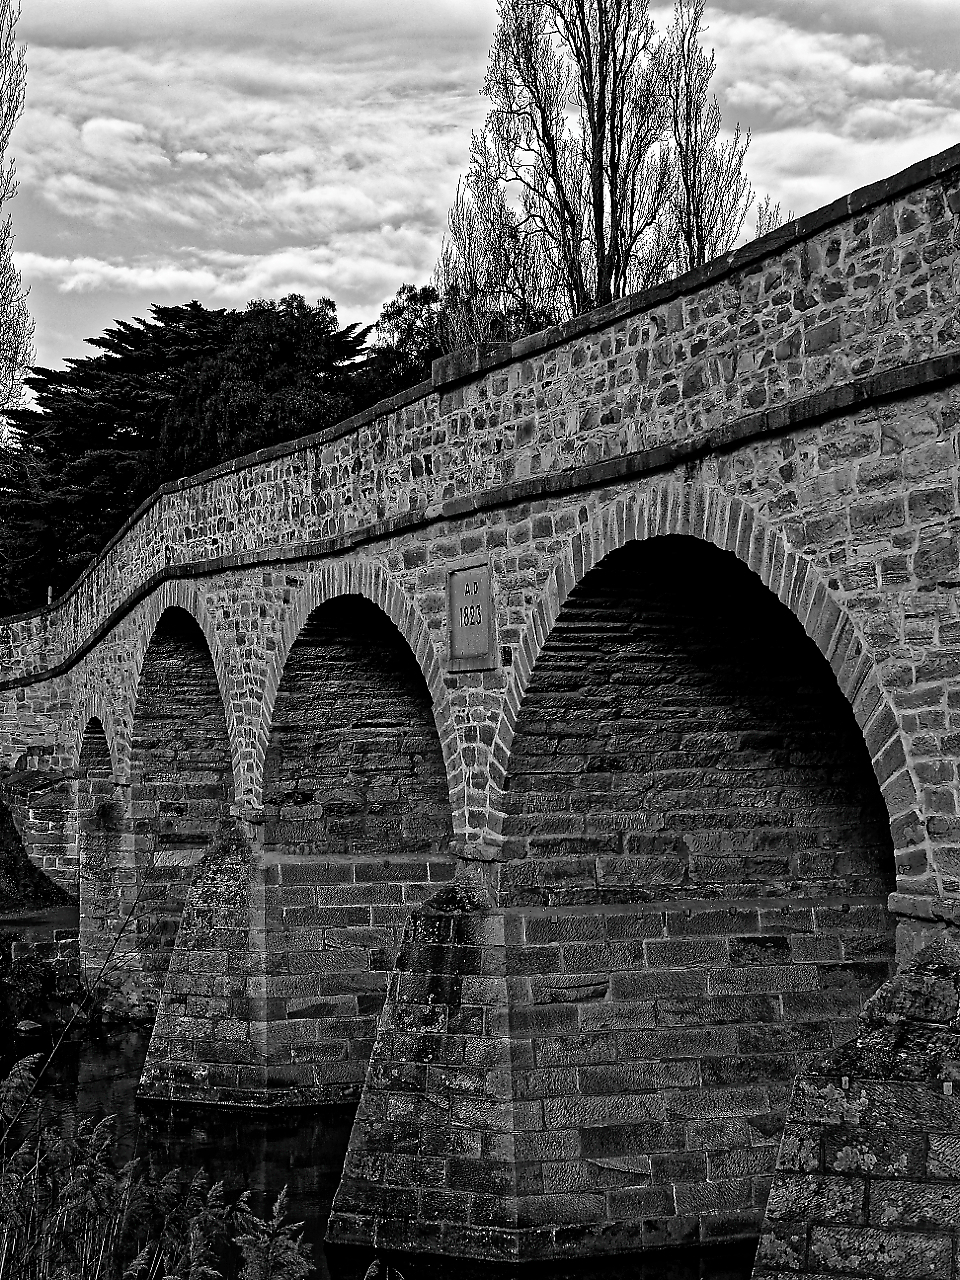 An hour or so before my flight home, i detoured to a small town called Richmond and its lovely stonework bridge.  I wish i had more time here